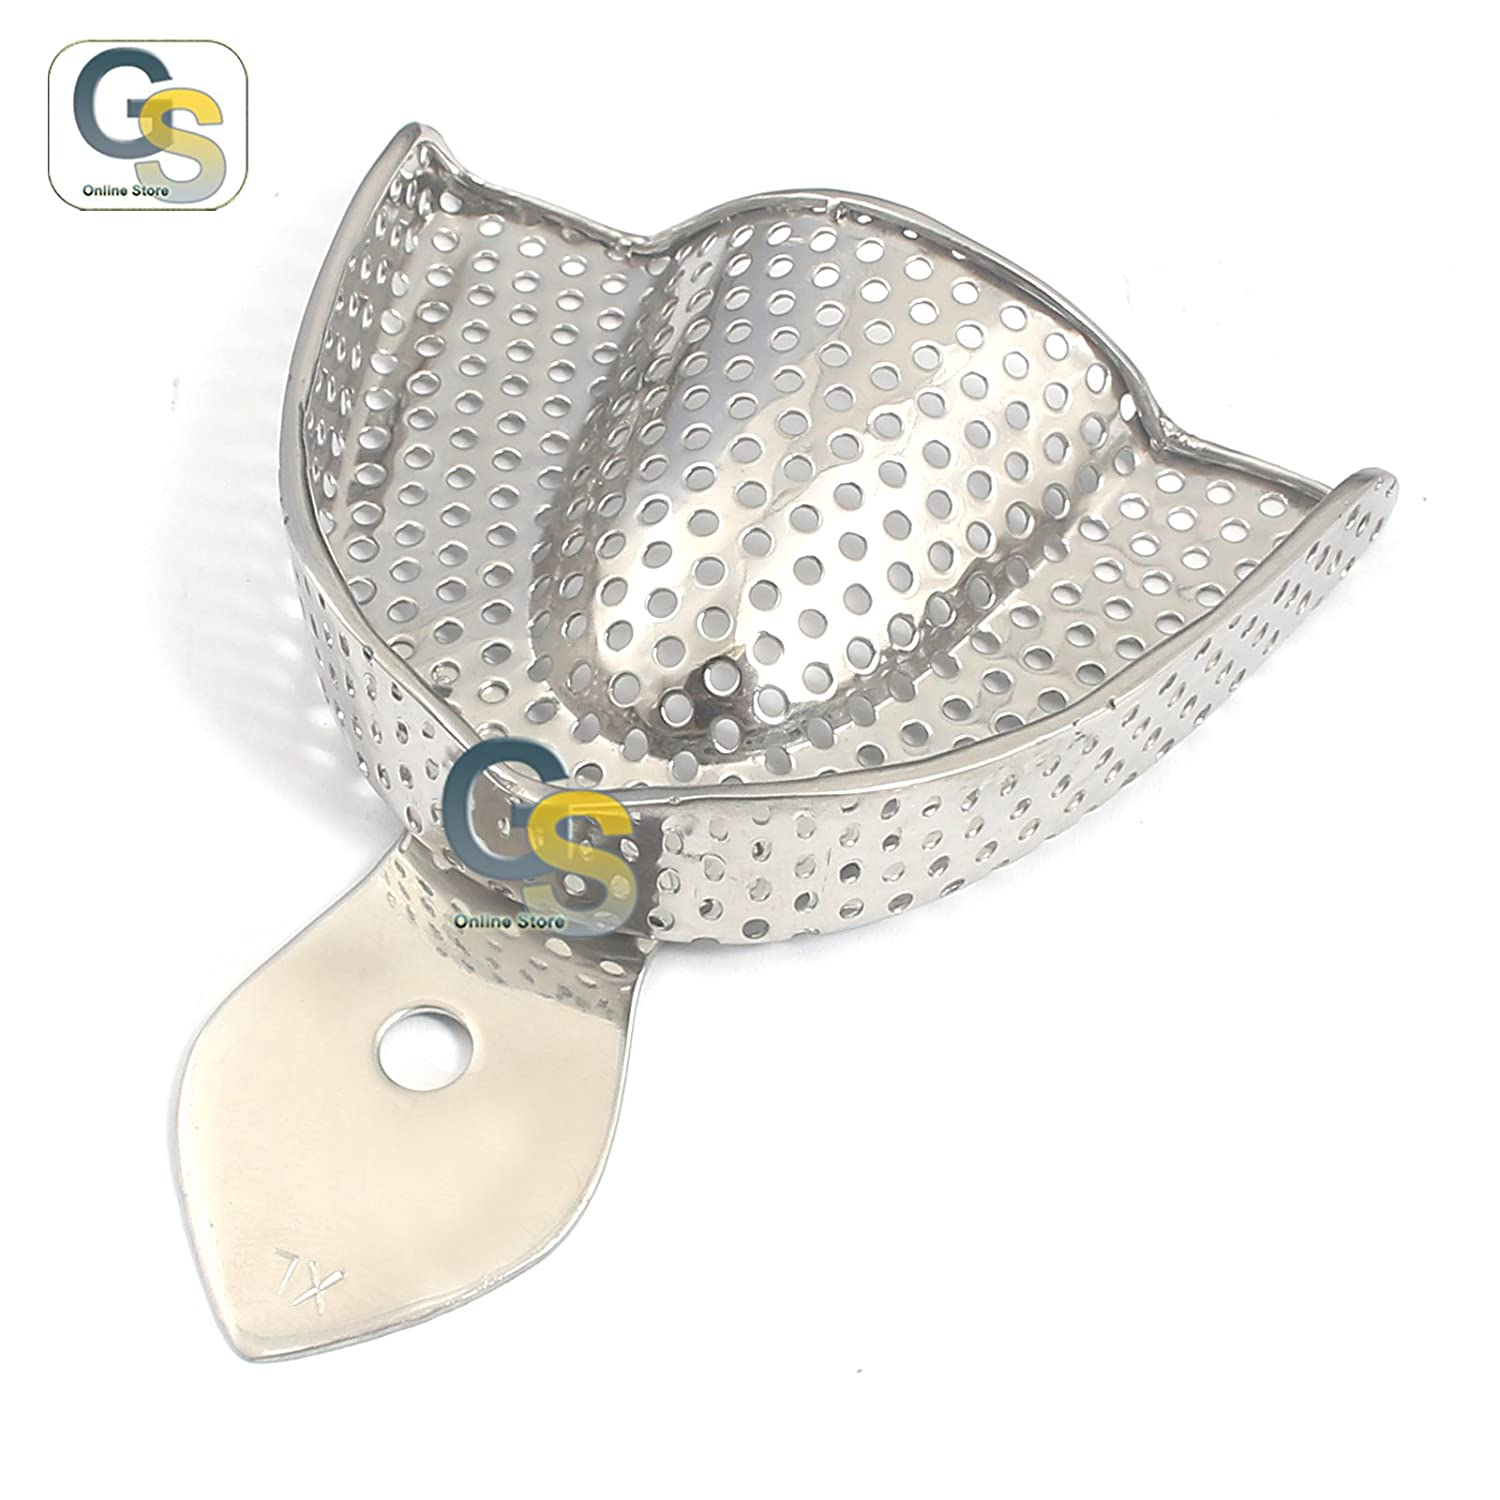 G.S Steel Impression Trays Upper X-Large, Perforated - Best Quality